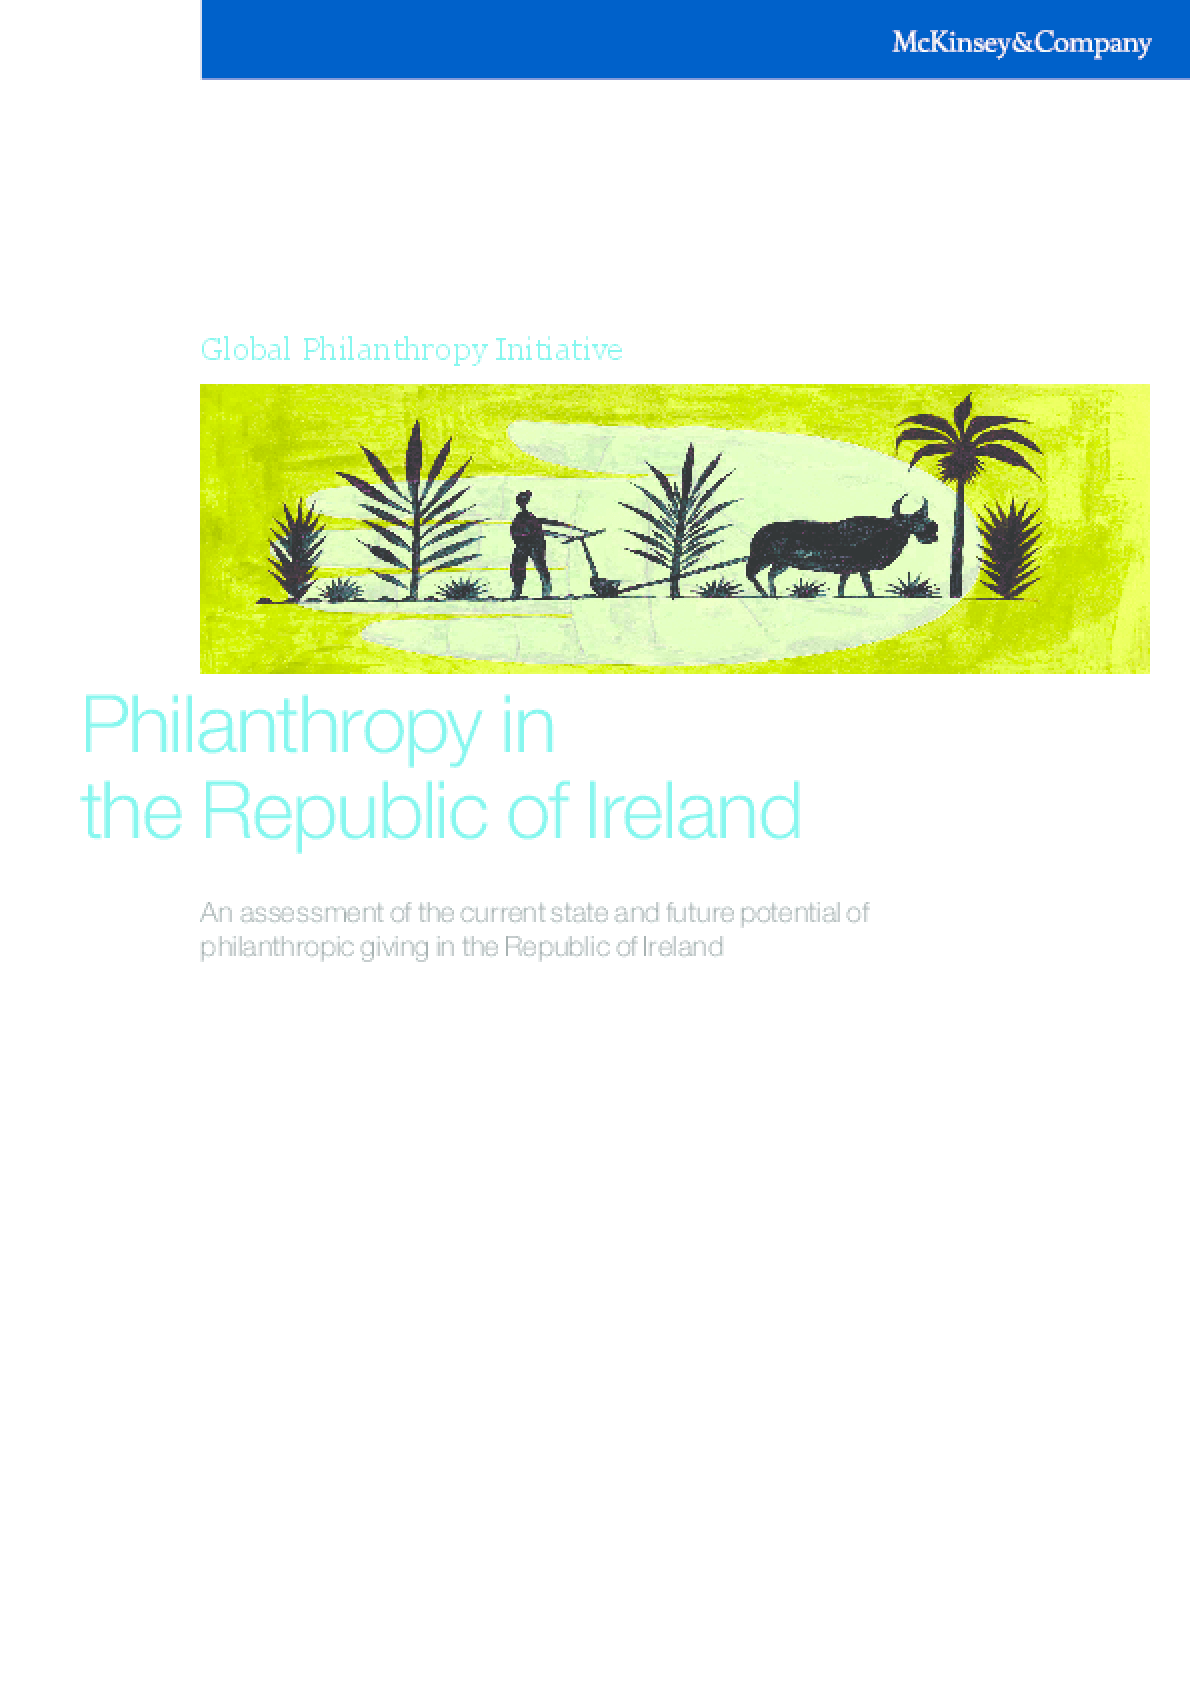 Philanthropy in the Republic of Ireland: an Assessment of the Current State and the Future Potential of Philanthropic Giving in the Republic of Ireland